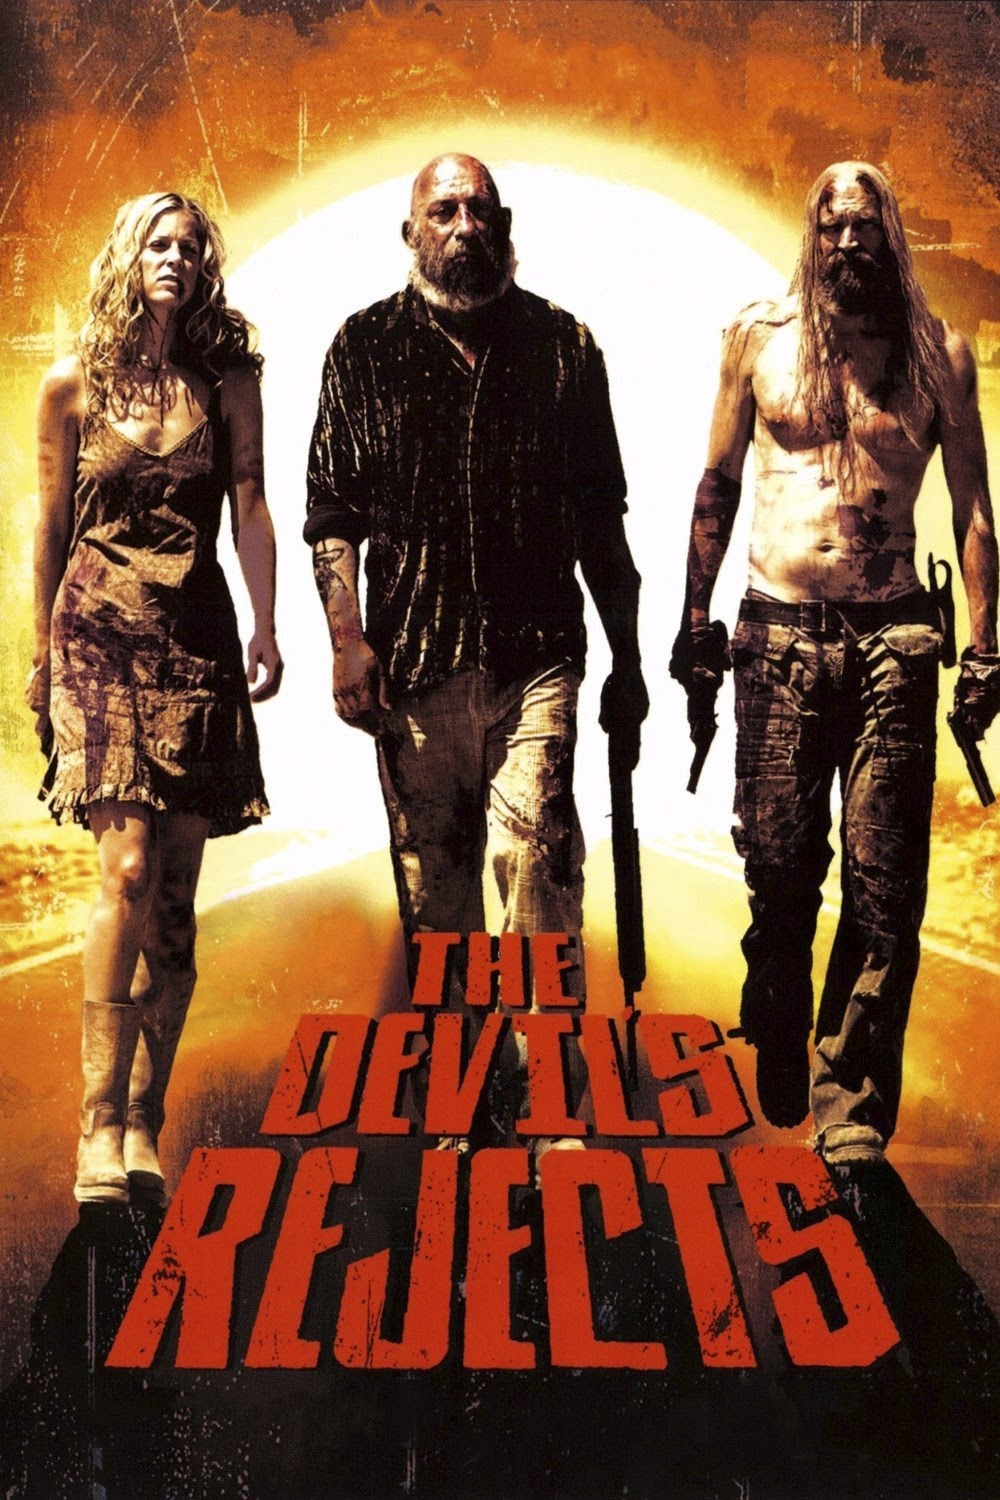 The Devil's Rejects 2005